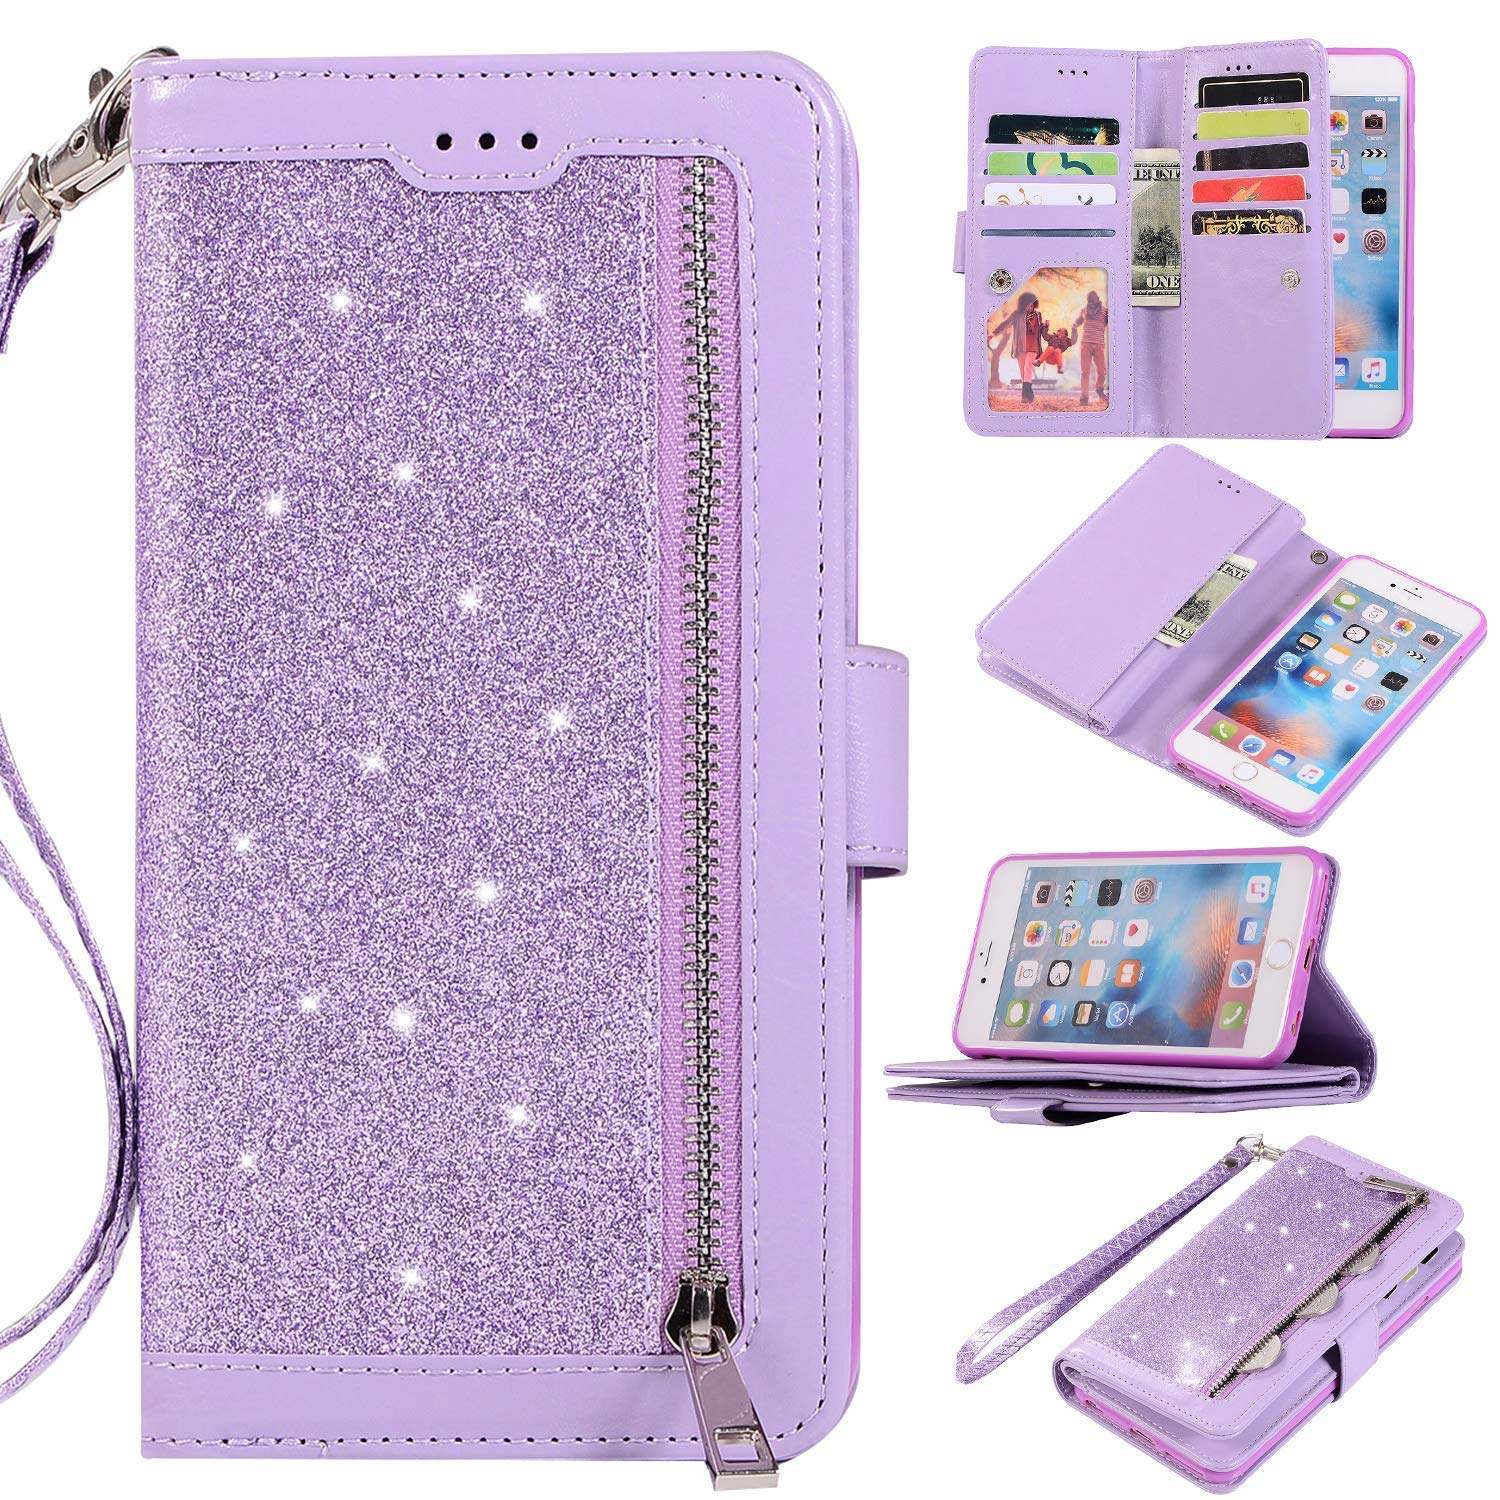 Hnzxy Compatible for Samsung Galaxy S9 Plus Case,Galaxy S9 Plus Cover,Bling Glitter Vintage PU Leather Flip Wallet Magnetic Case Multi-Function 9 Credit Card Slots with Zipper Coins Purse Cover,Purple by Hnzxy